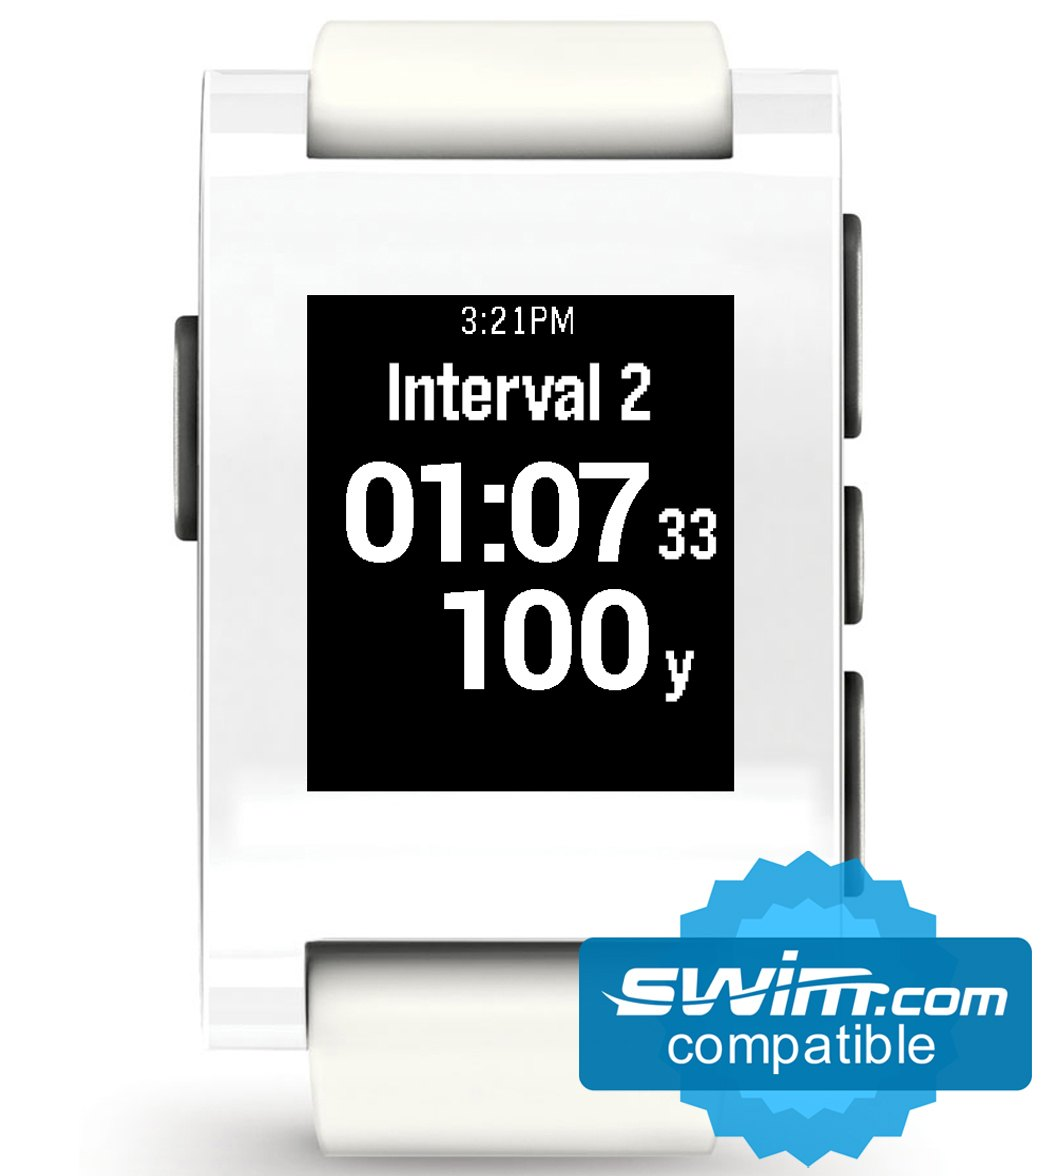 6a718c28359f Pebble Waterproof Smart Watch with Automatic Lap Counter at SwimOutlet.com  - Free Shipping